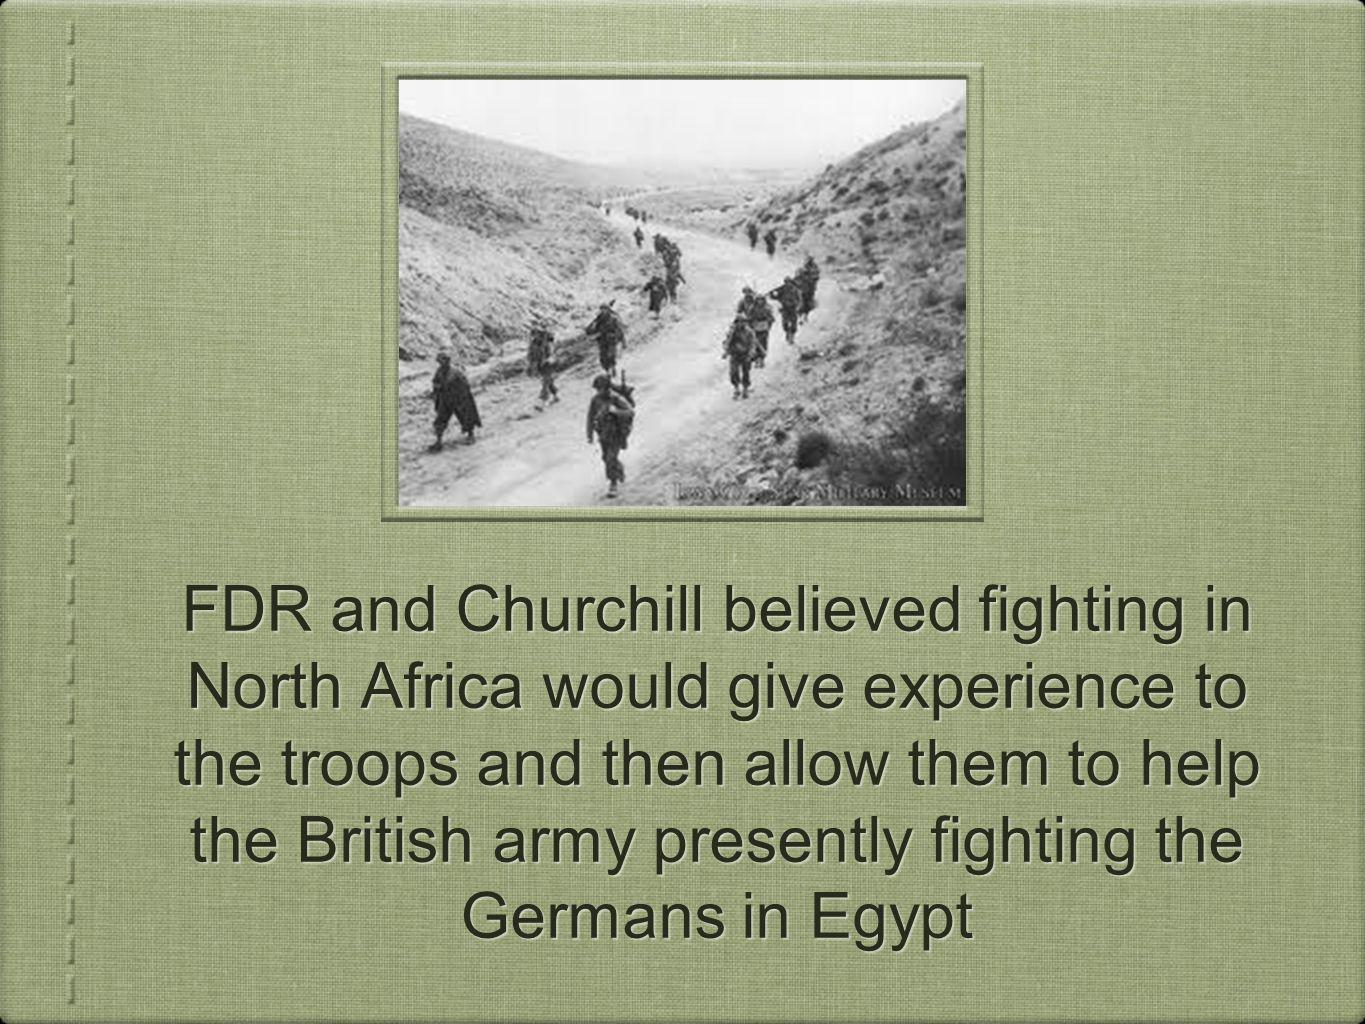 FDR and Churchill believed fighting in North Africa would give experience to the troops and then allow them to help the British army presently fightin